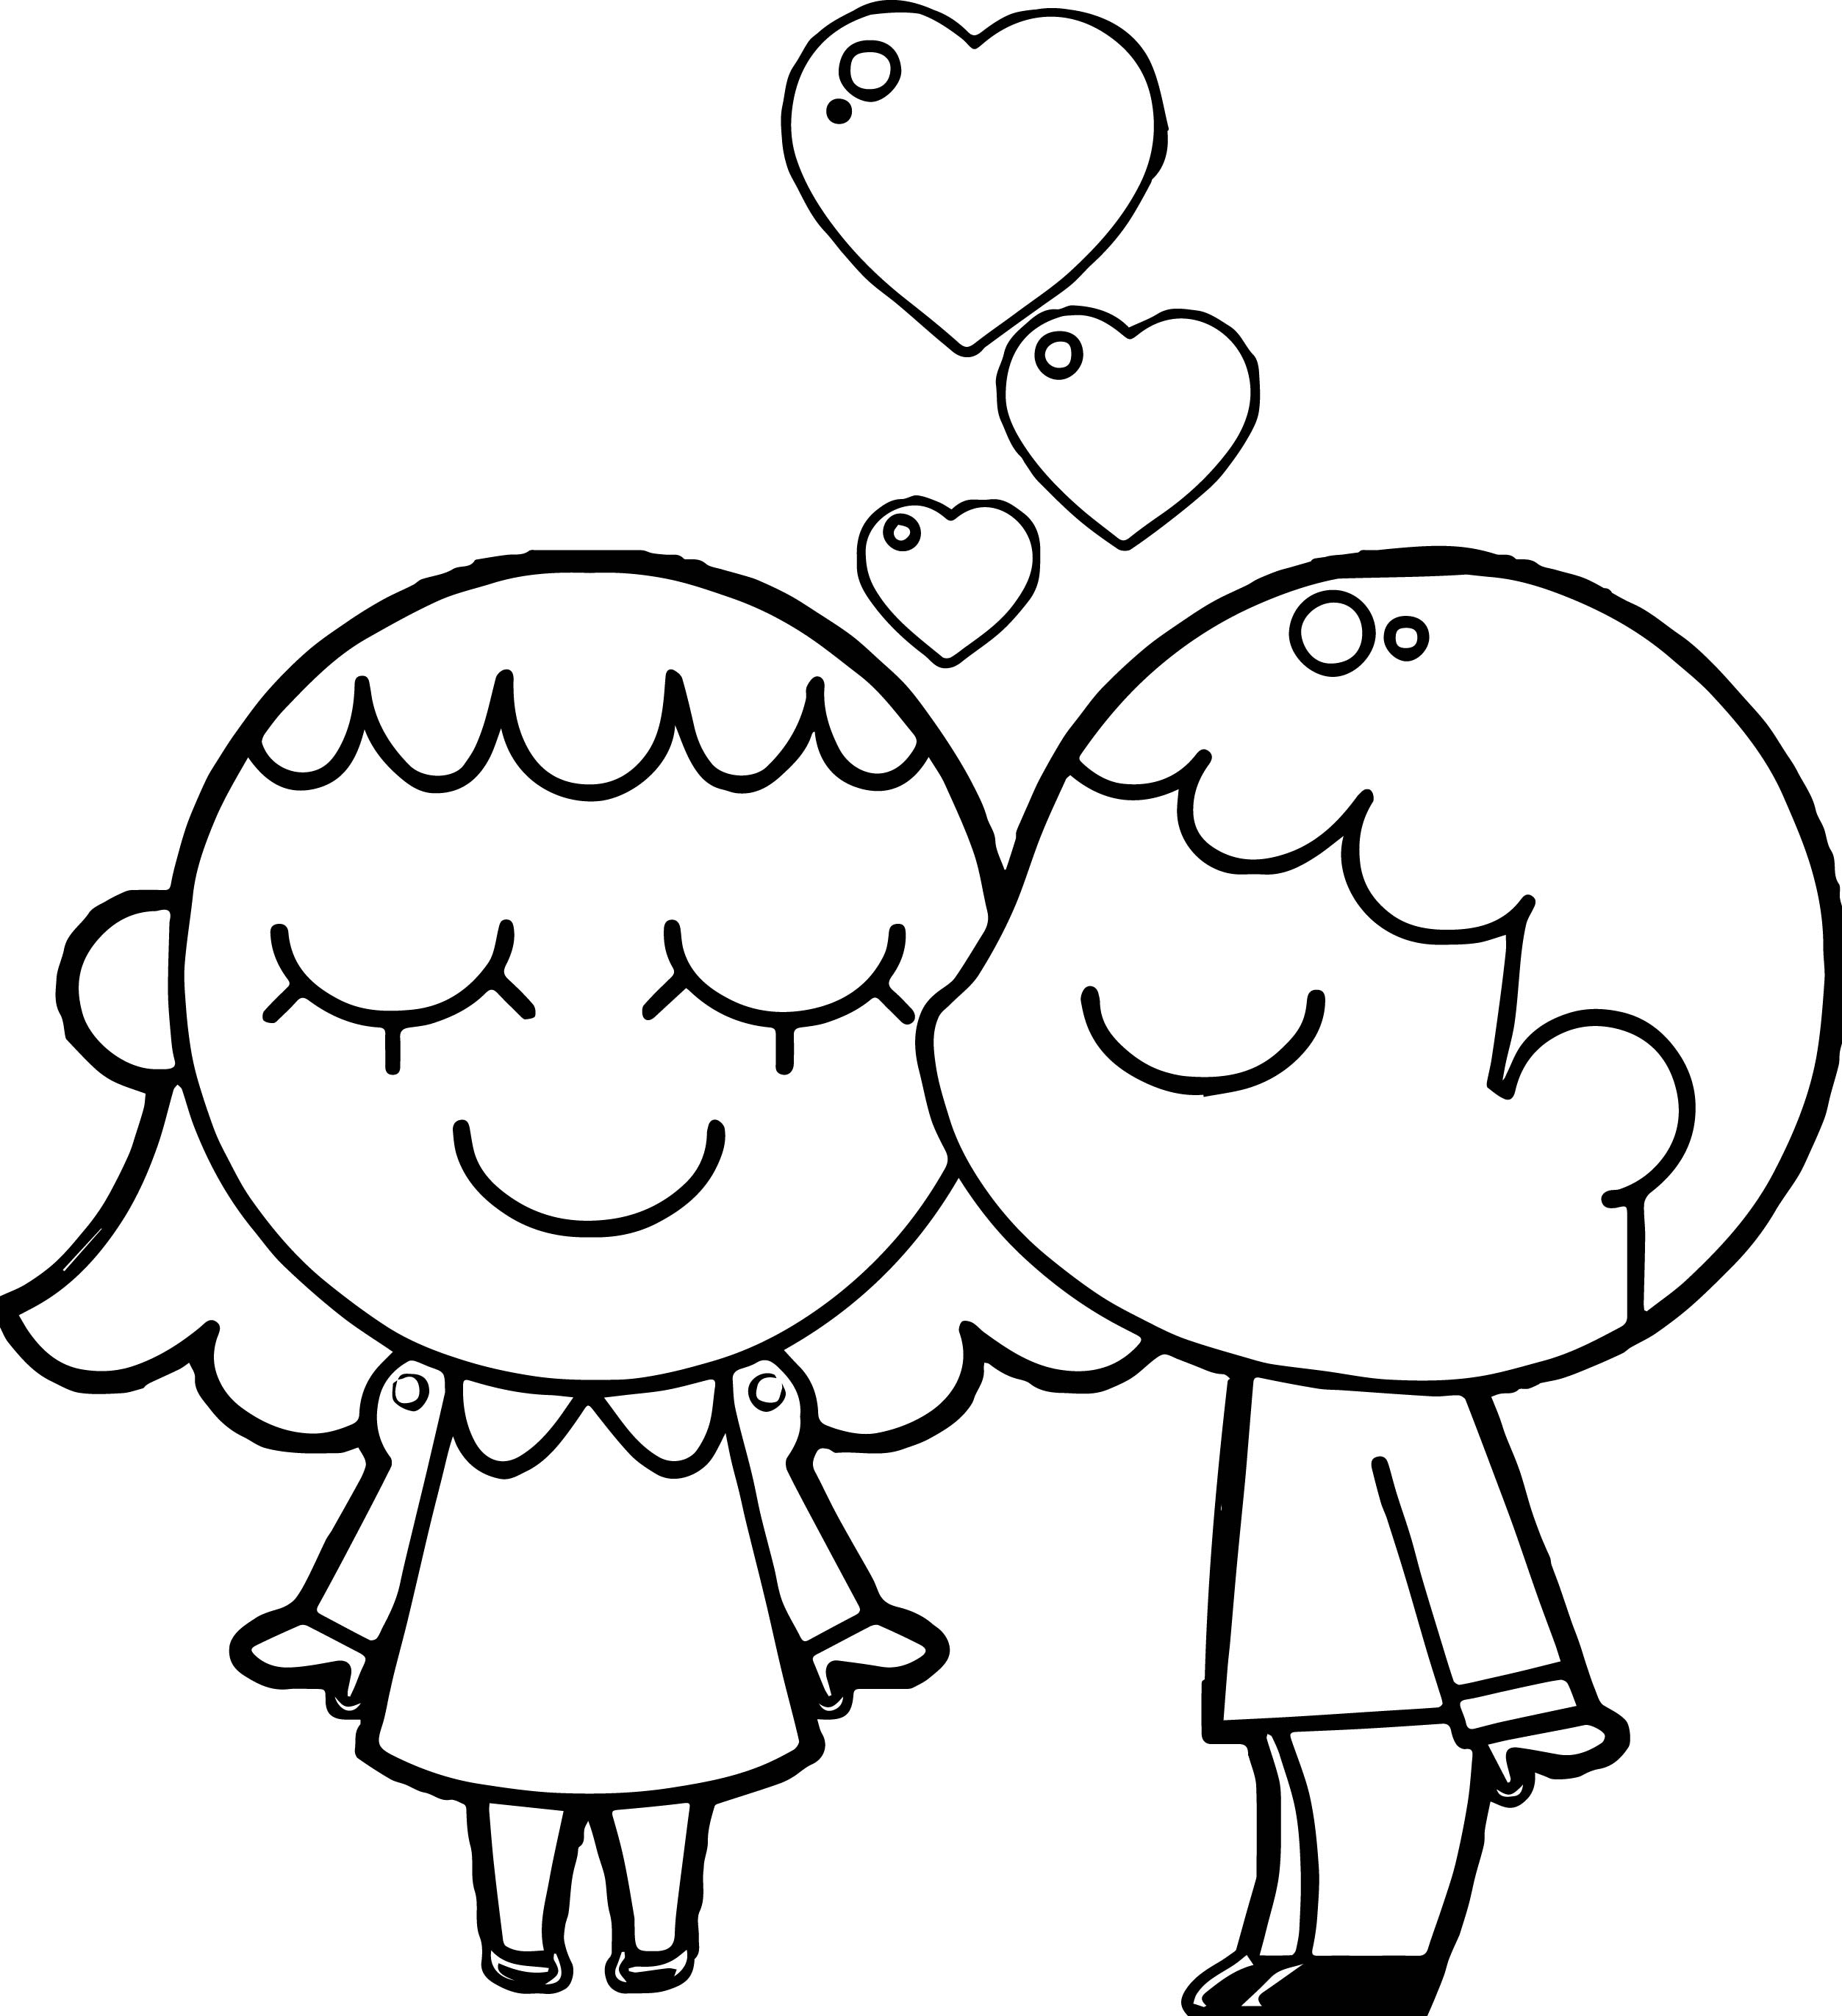 Best Friends Boy And Girl Coloring Page Wecoloringpage